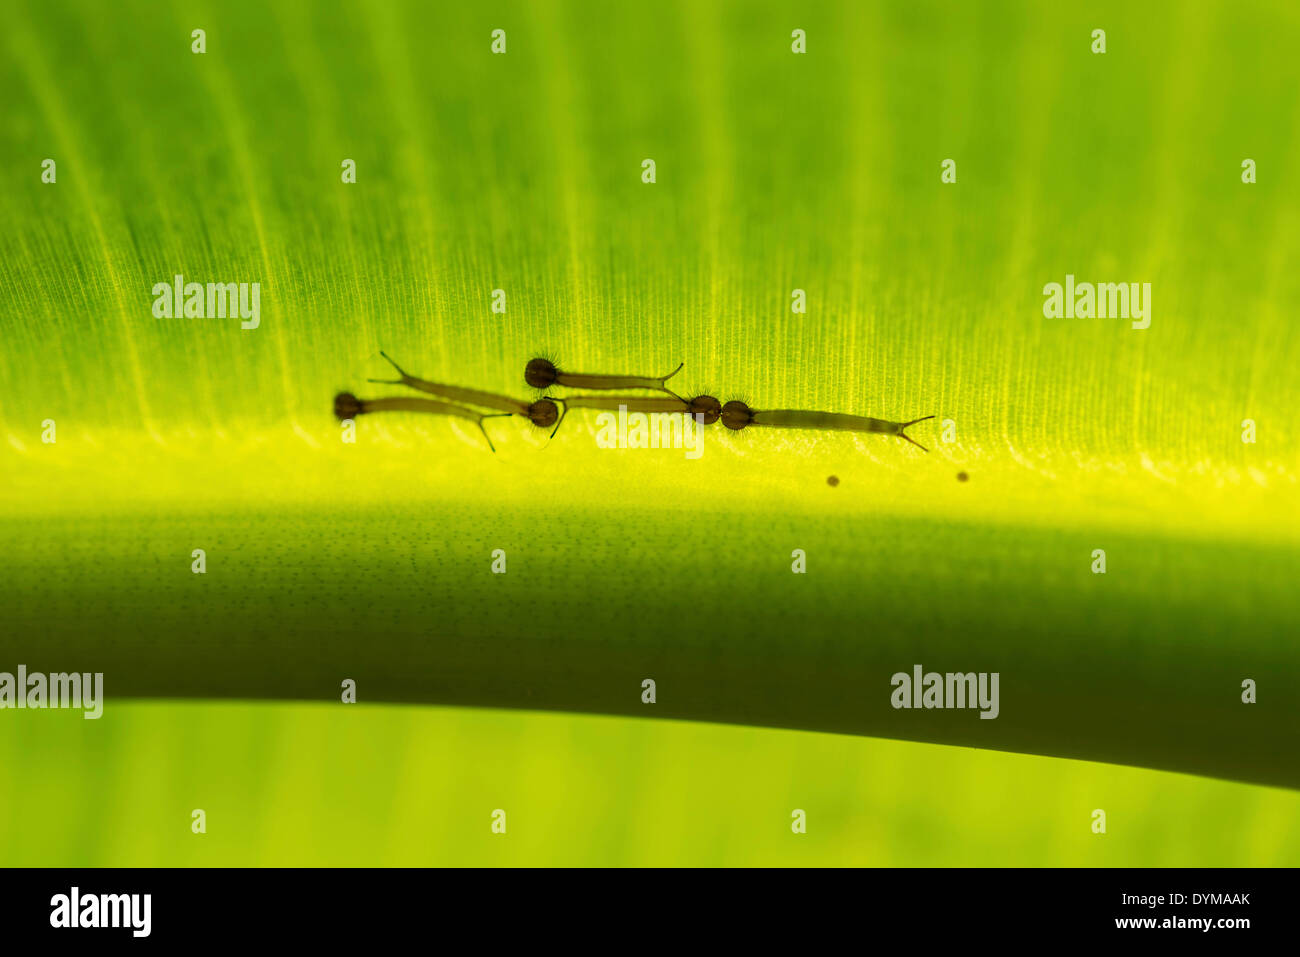 Young caterpillars of the Forest Giant Owl (Owl Butterfly) on the underside of a banana leaf, captive, native to South America - Stock Image